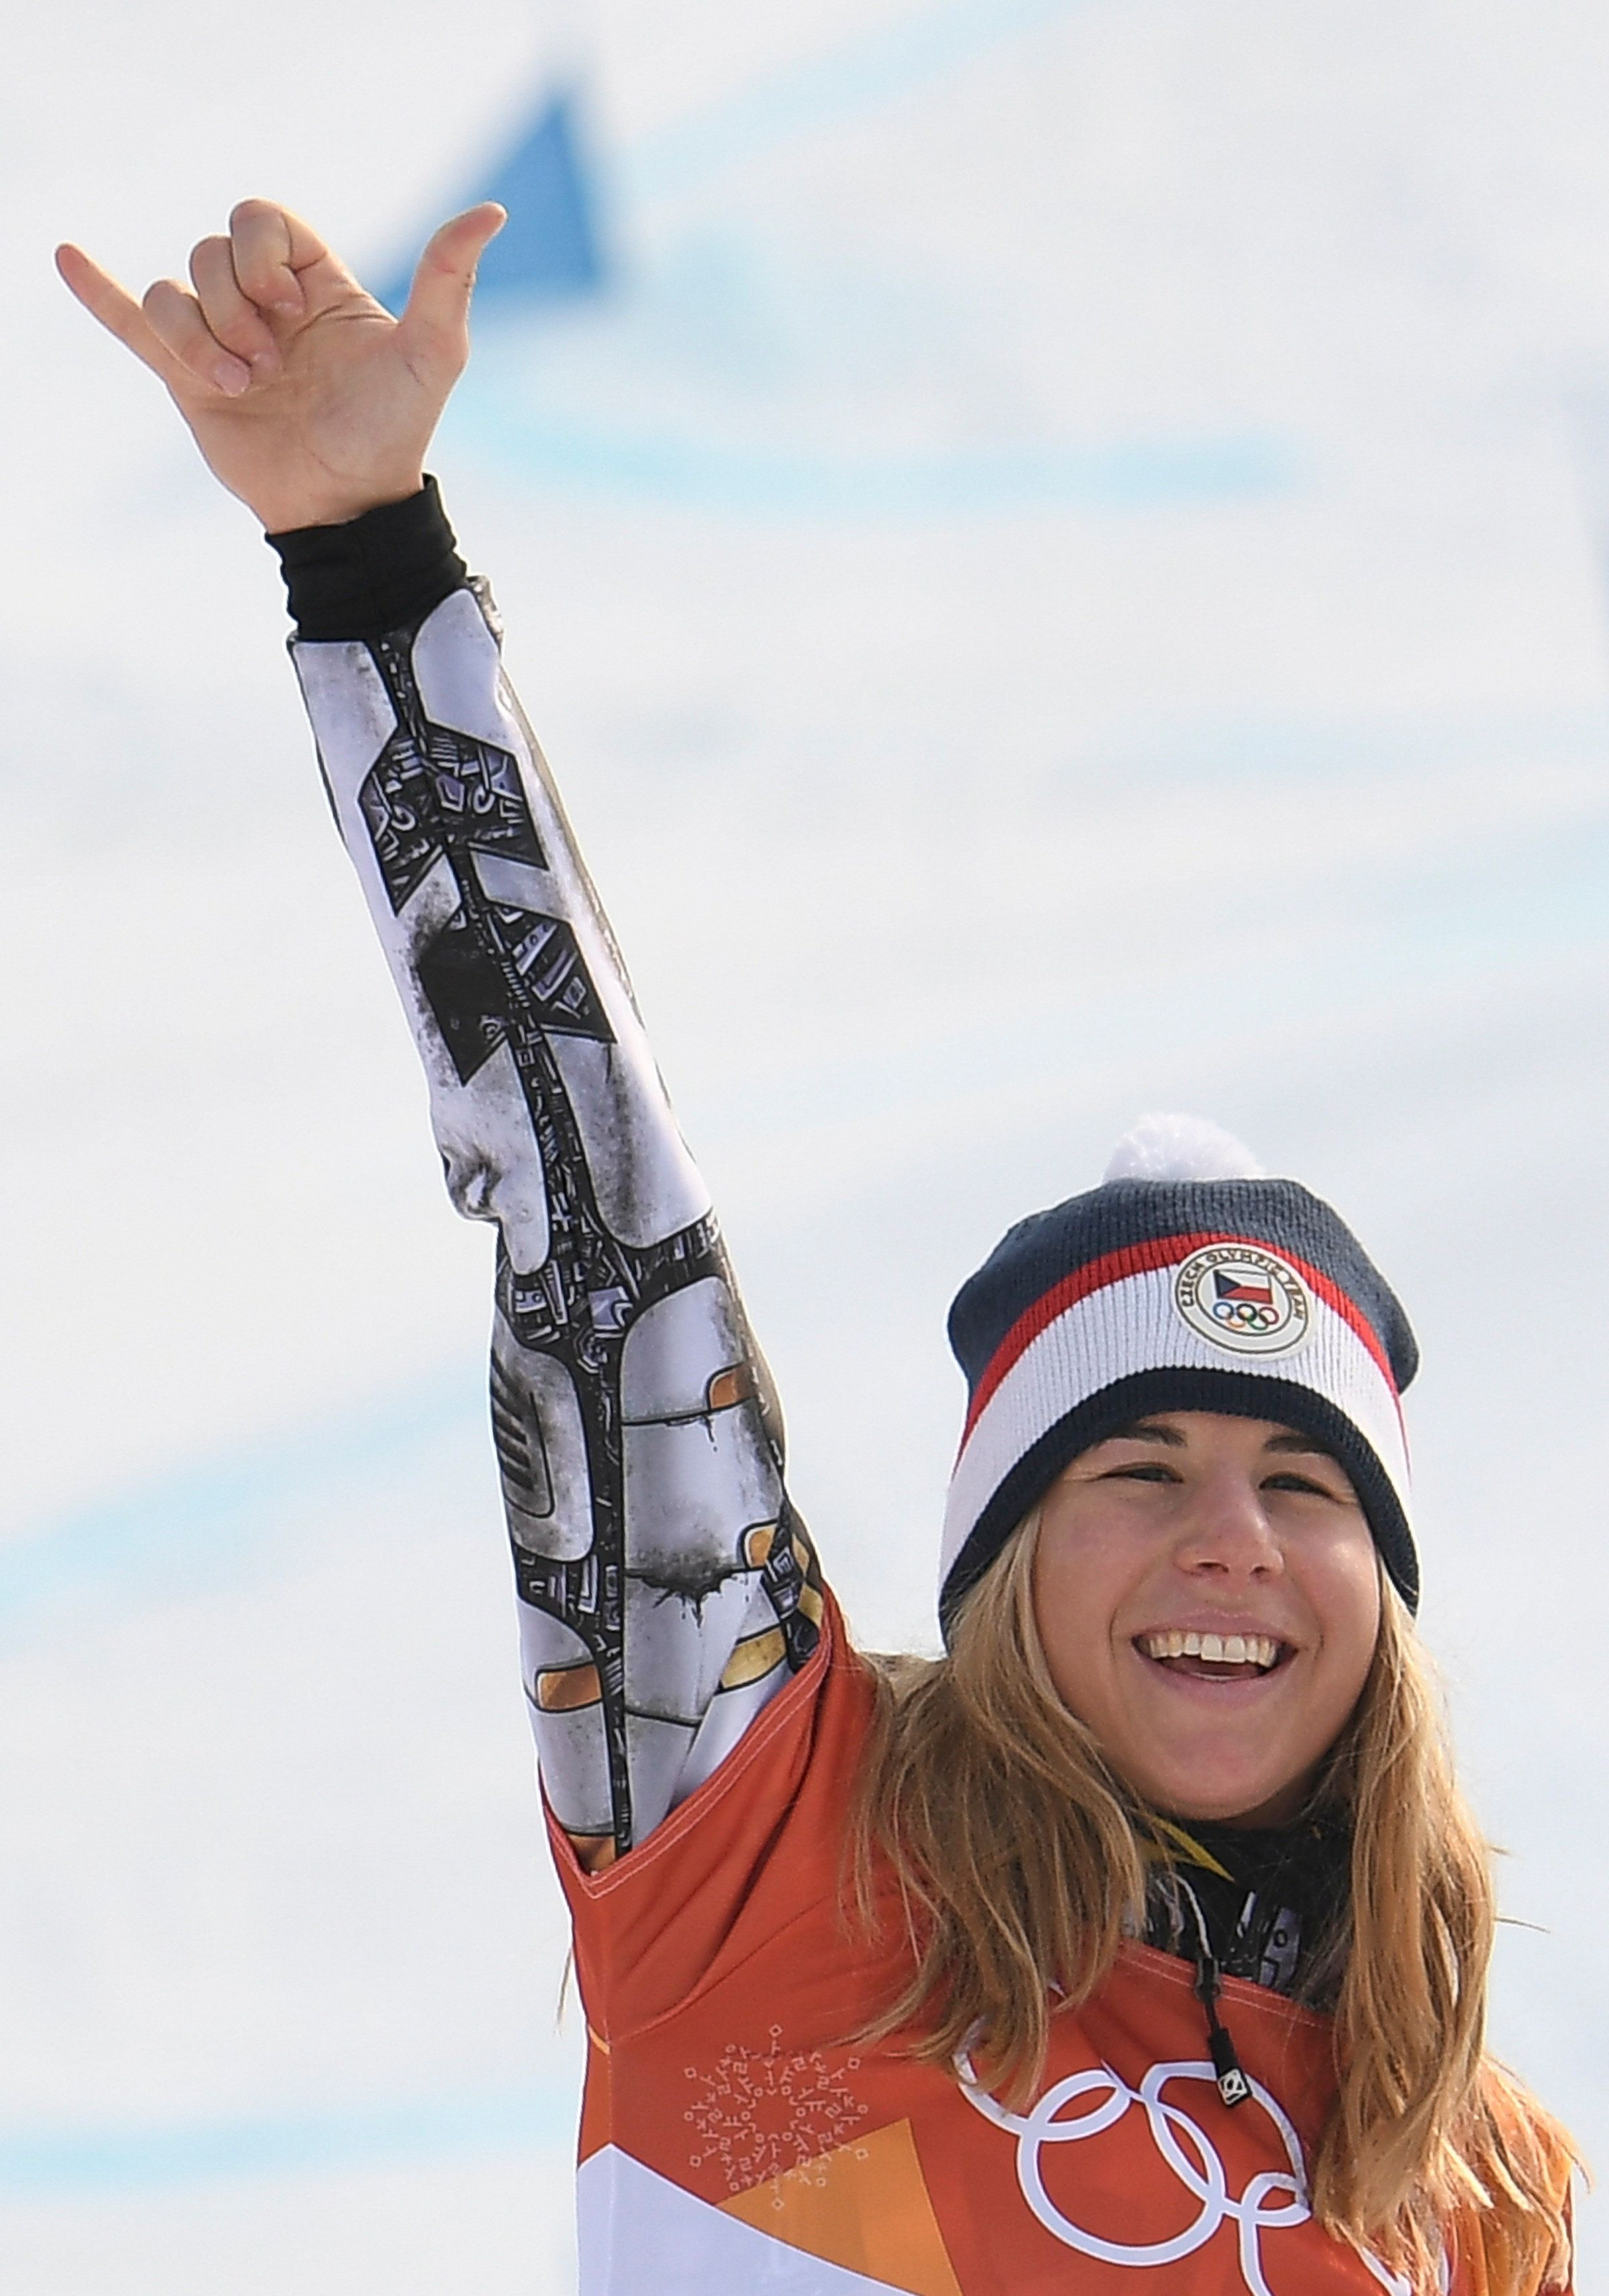 Gold medallist Czech Republic's Ester Ledecka celebrates on the podium during the victory ceremony for the women's snowboard parallel giant slalom event at the Phoenix Park during the Pyeongchang 2018 Winter Olympic Games on February 24, 2018 in Pyeongchang.  / AFP PHOTO / LOIC VENANCE        (Photo credit should read LOIC VENANCE/AFP/Getty Images)